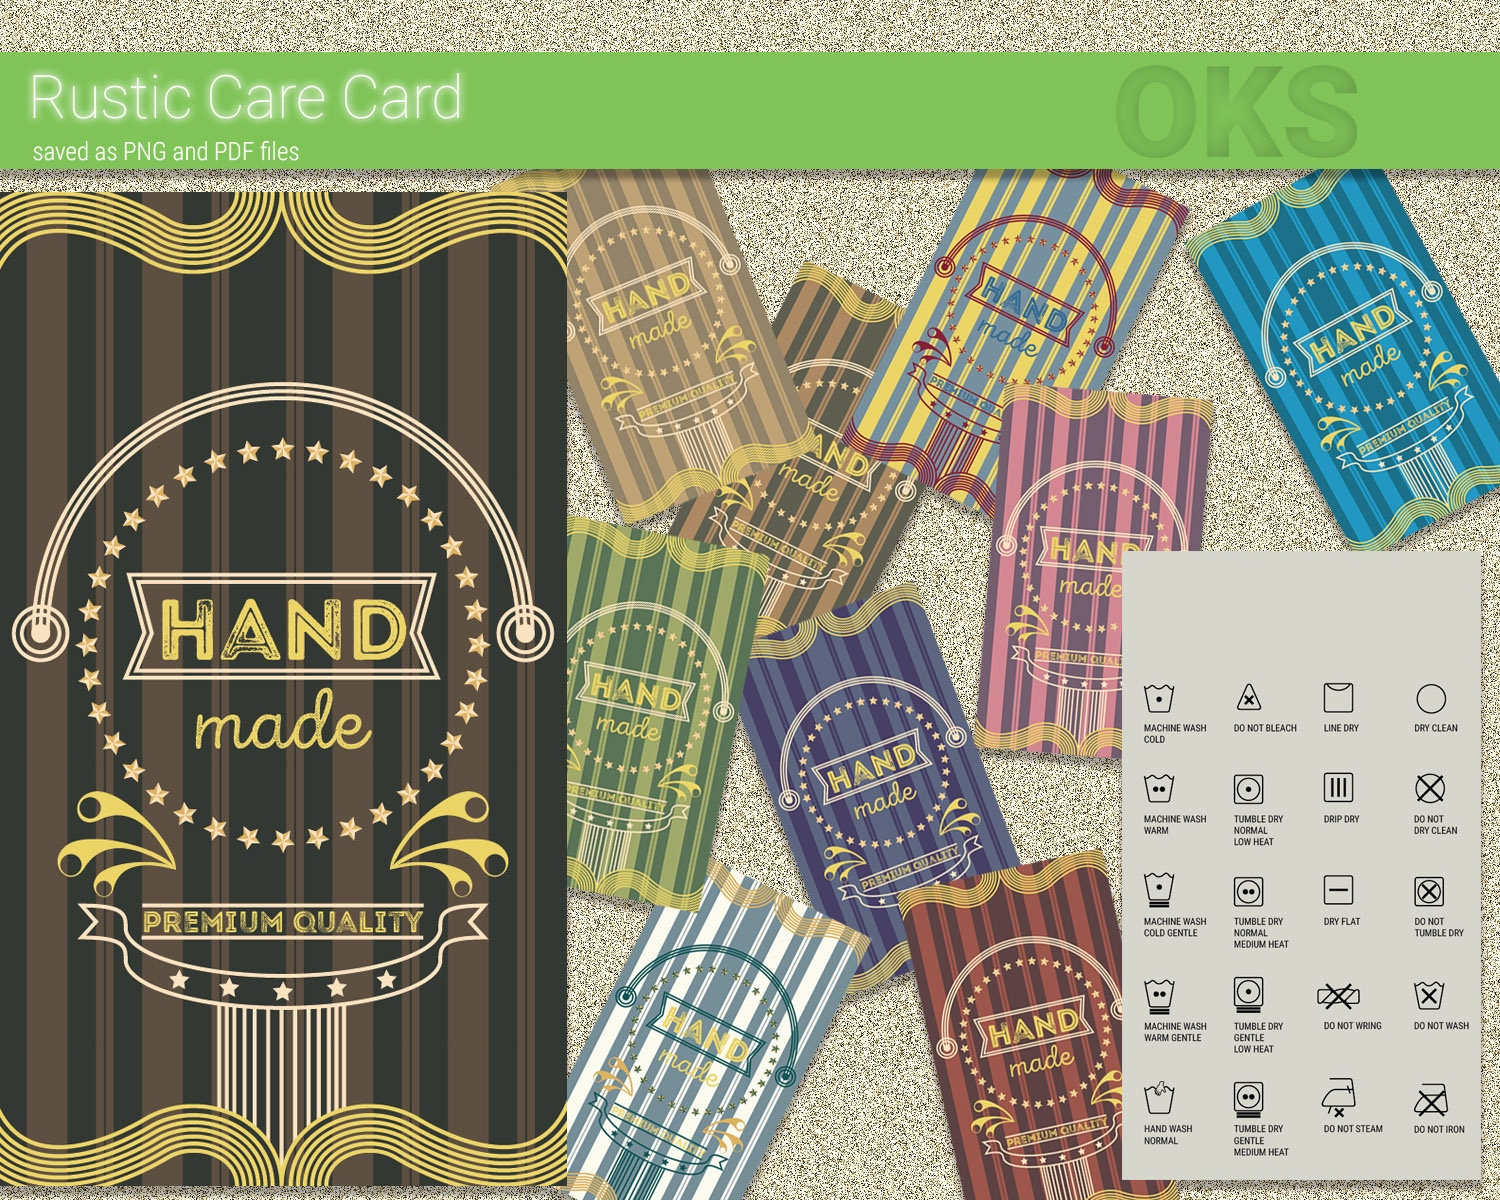 Rustic Laundry Care Cards Washing Instructions Download Etsy